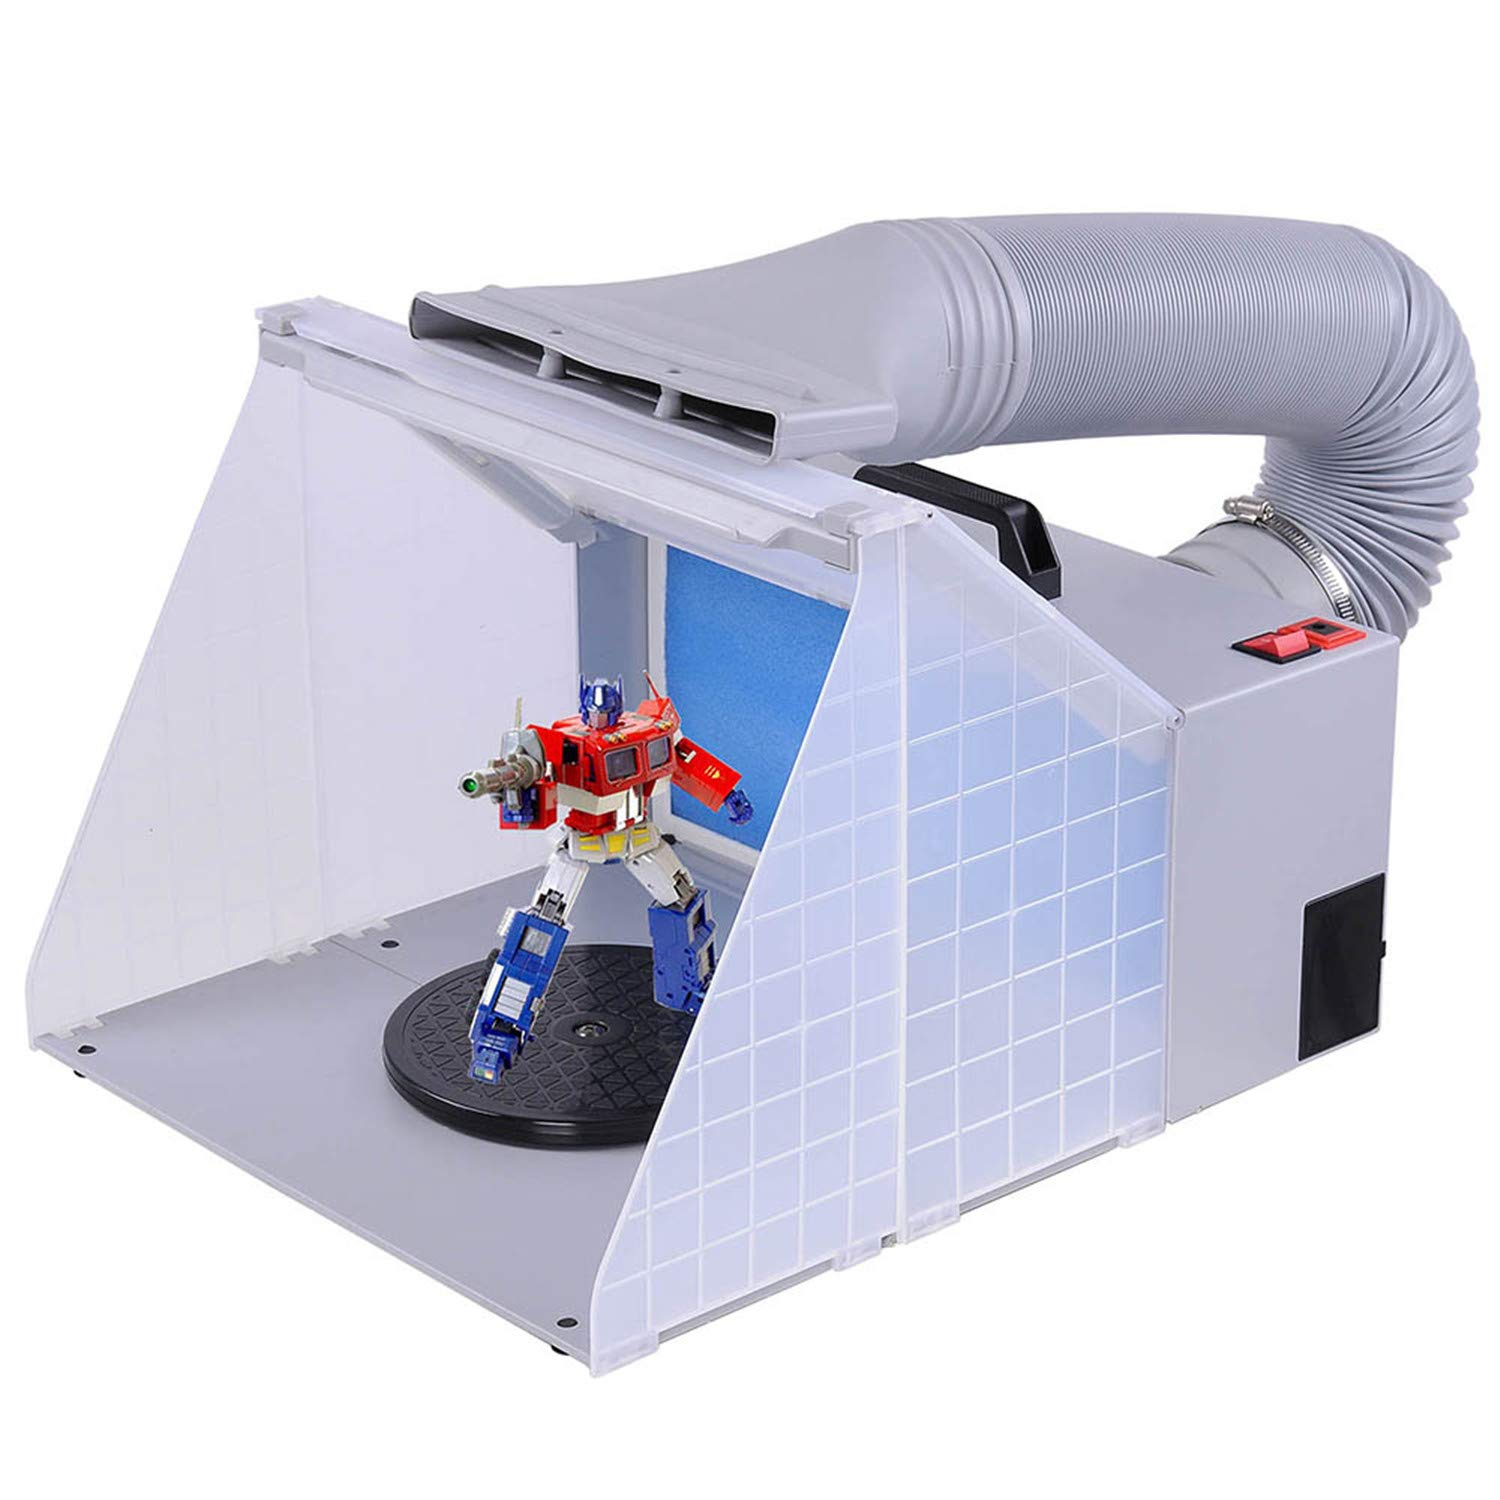 SHUTAO Airbrush Spray Booth Portable with Fan Filter and LED Light 181130